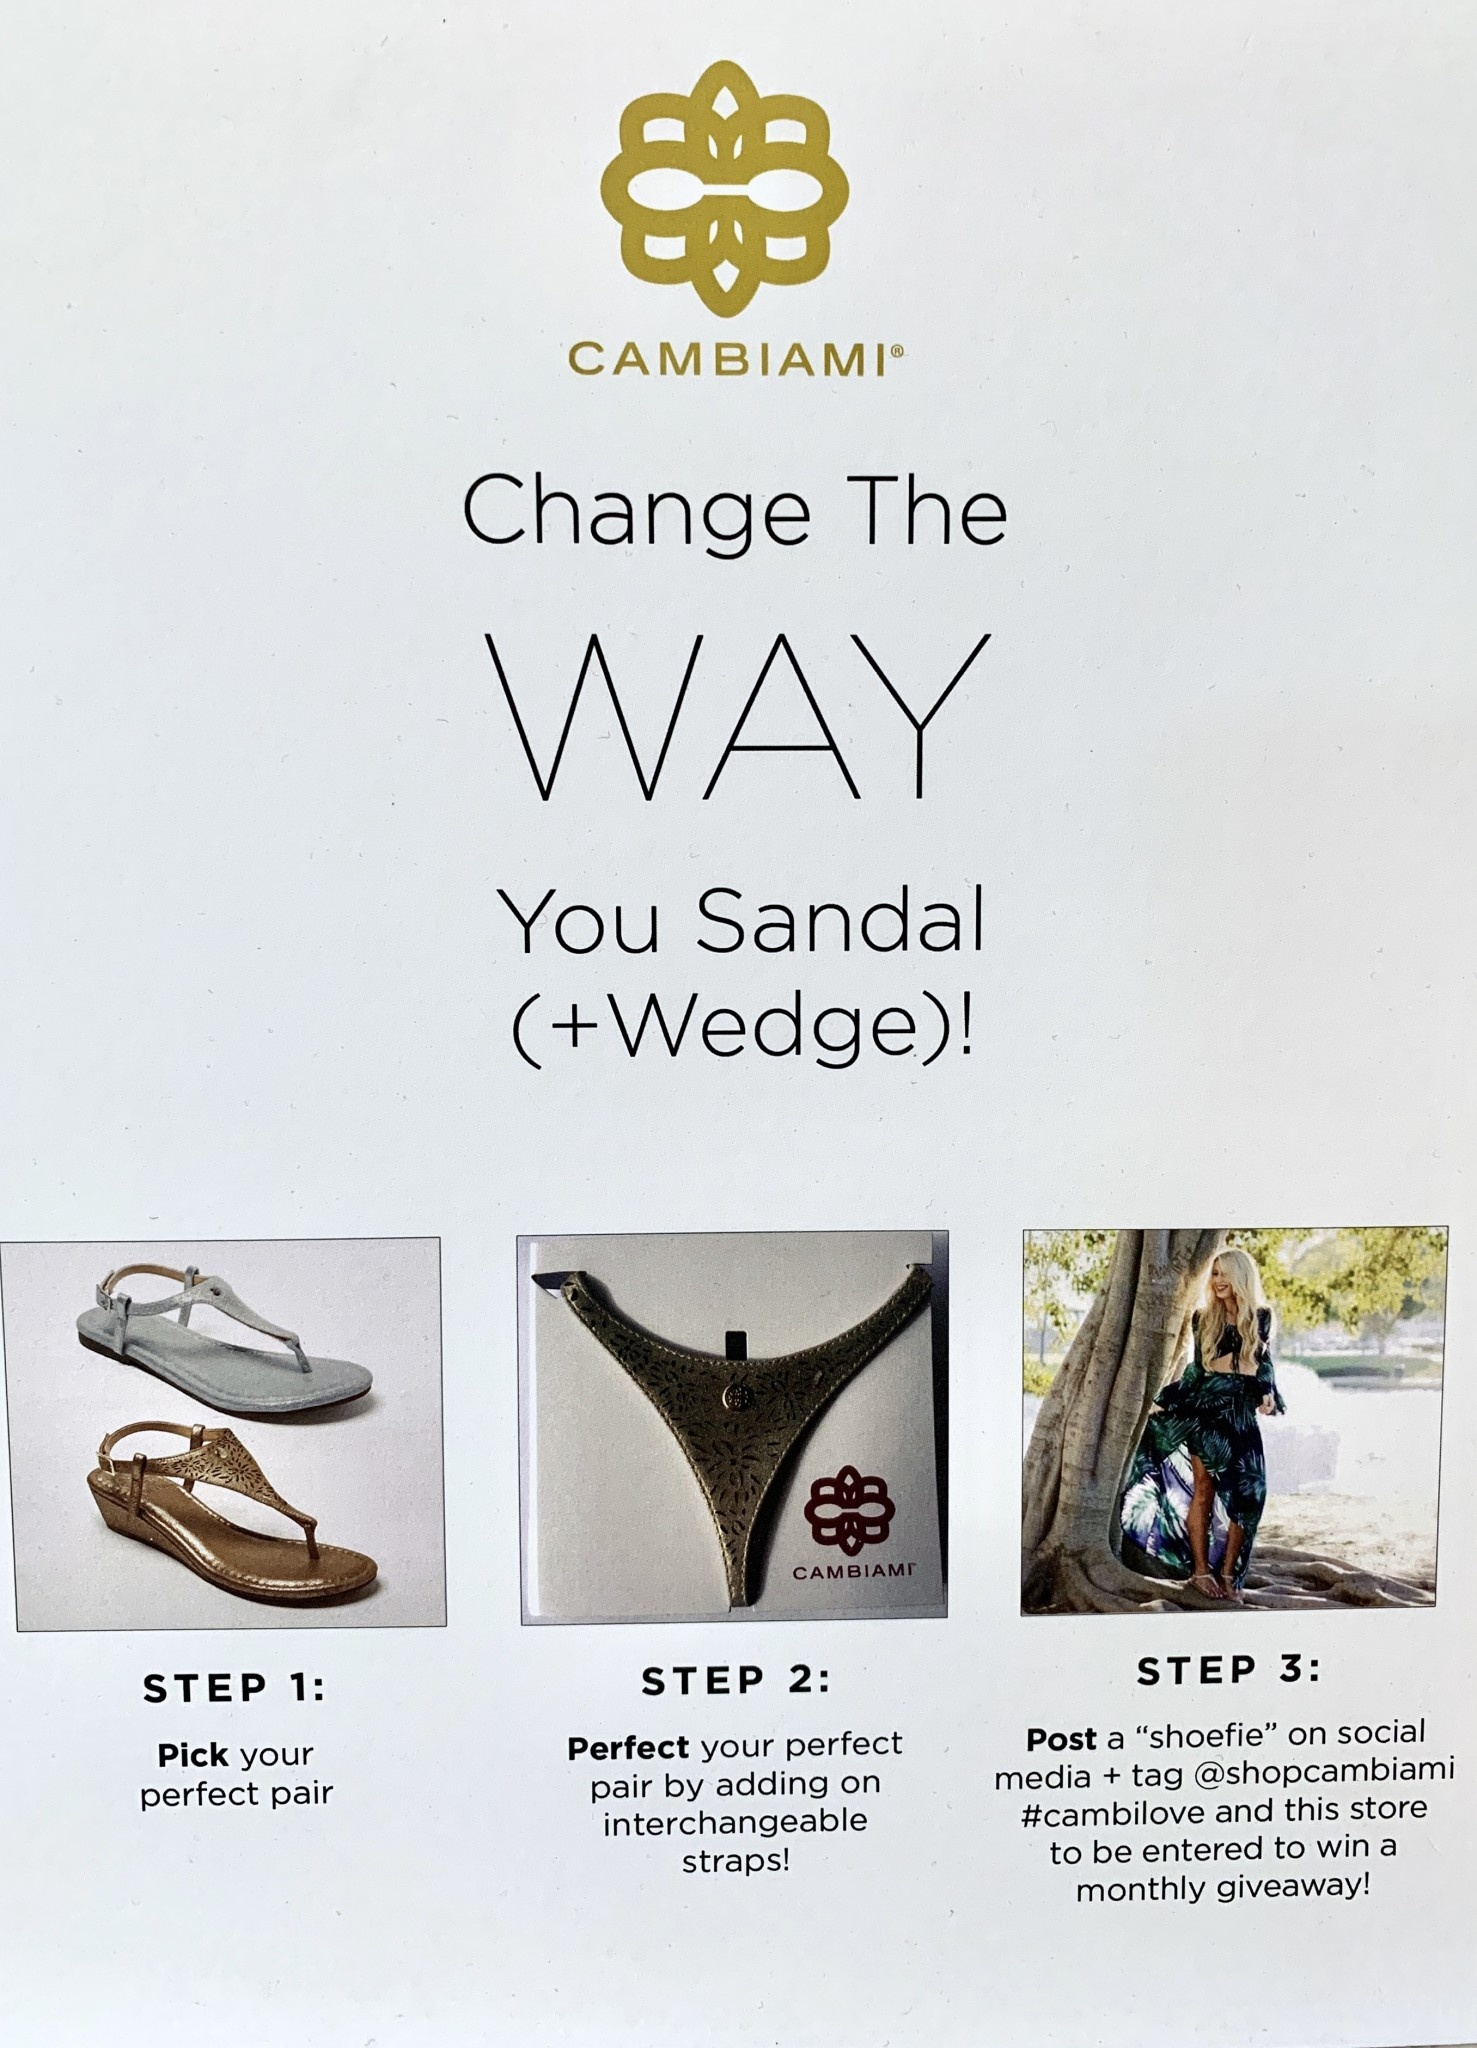 Cambiami Wedge